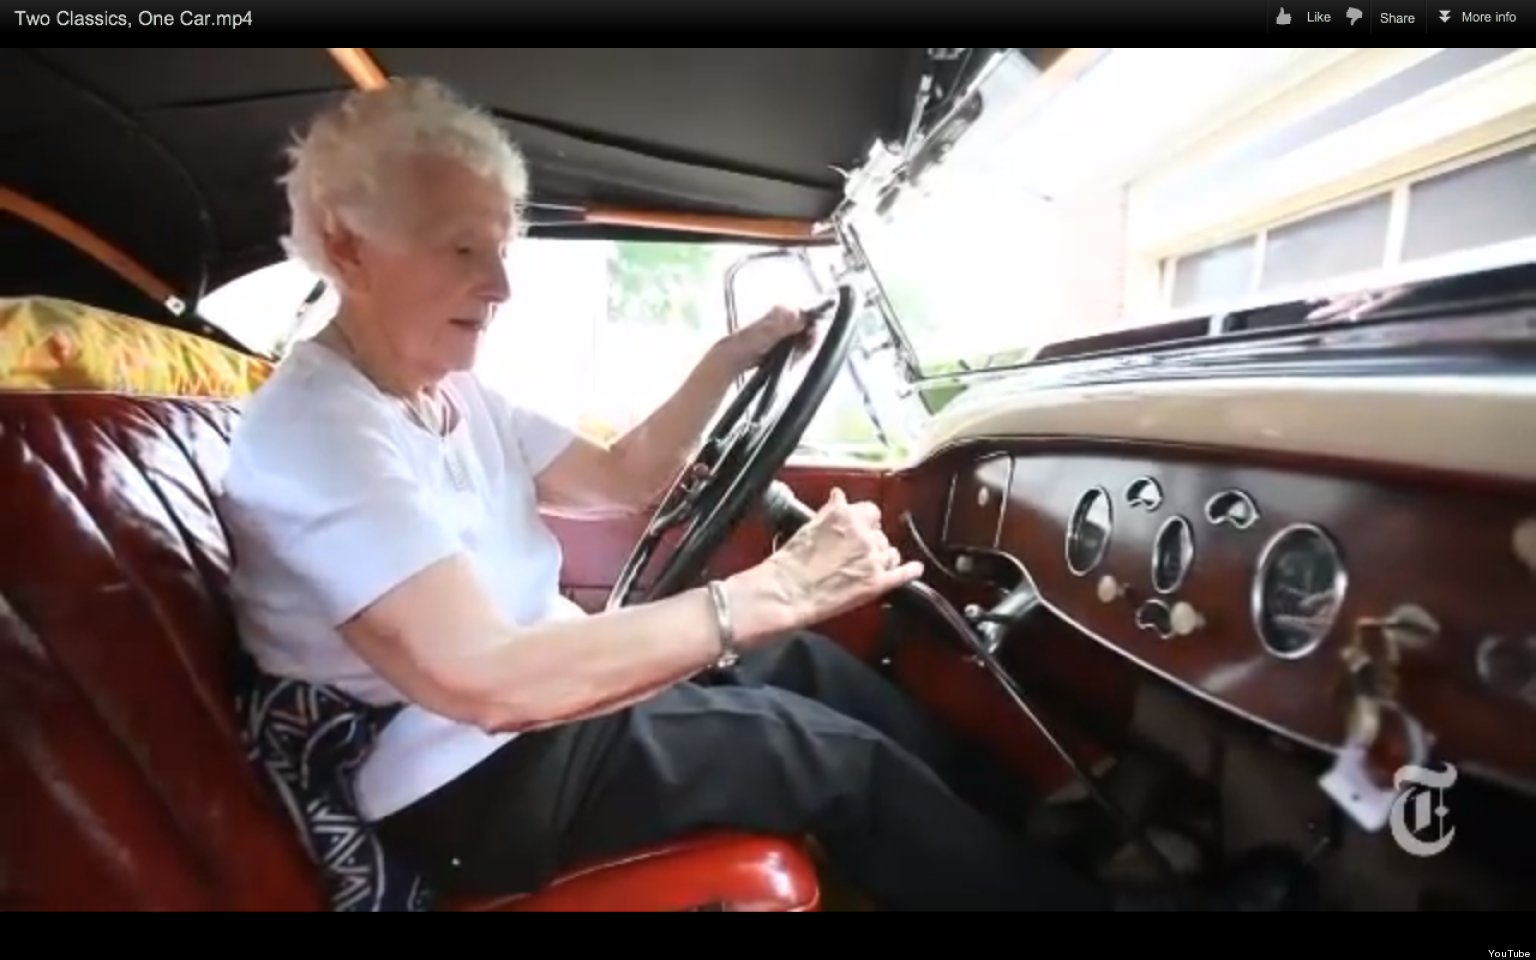 Margaret Dunning, 102-Year-Old Car Enthusiast, Has 94